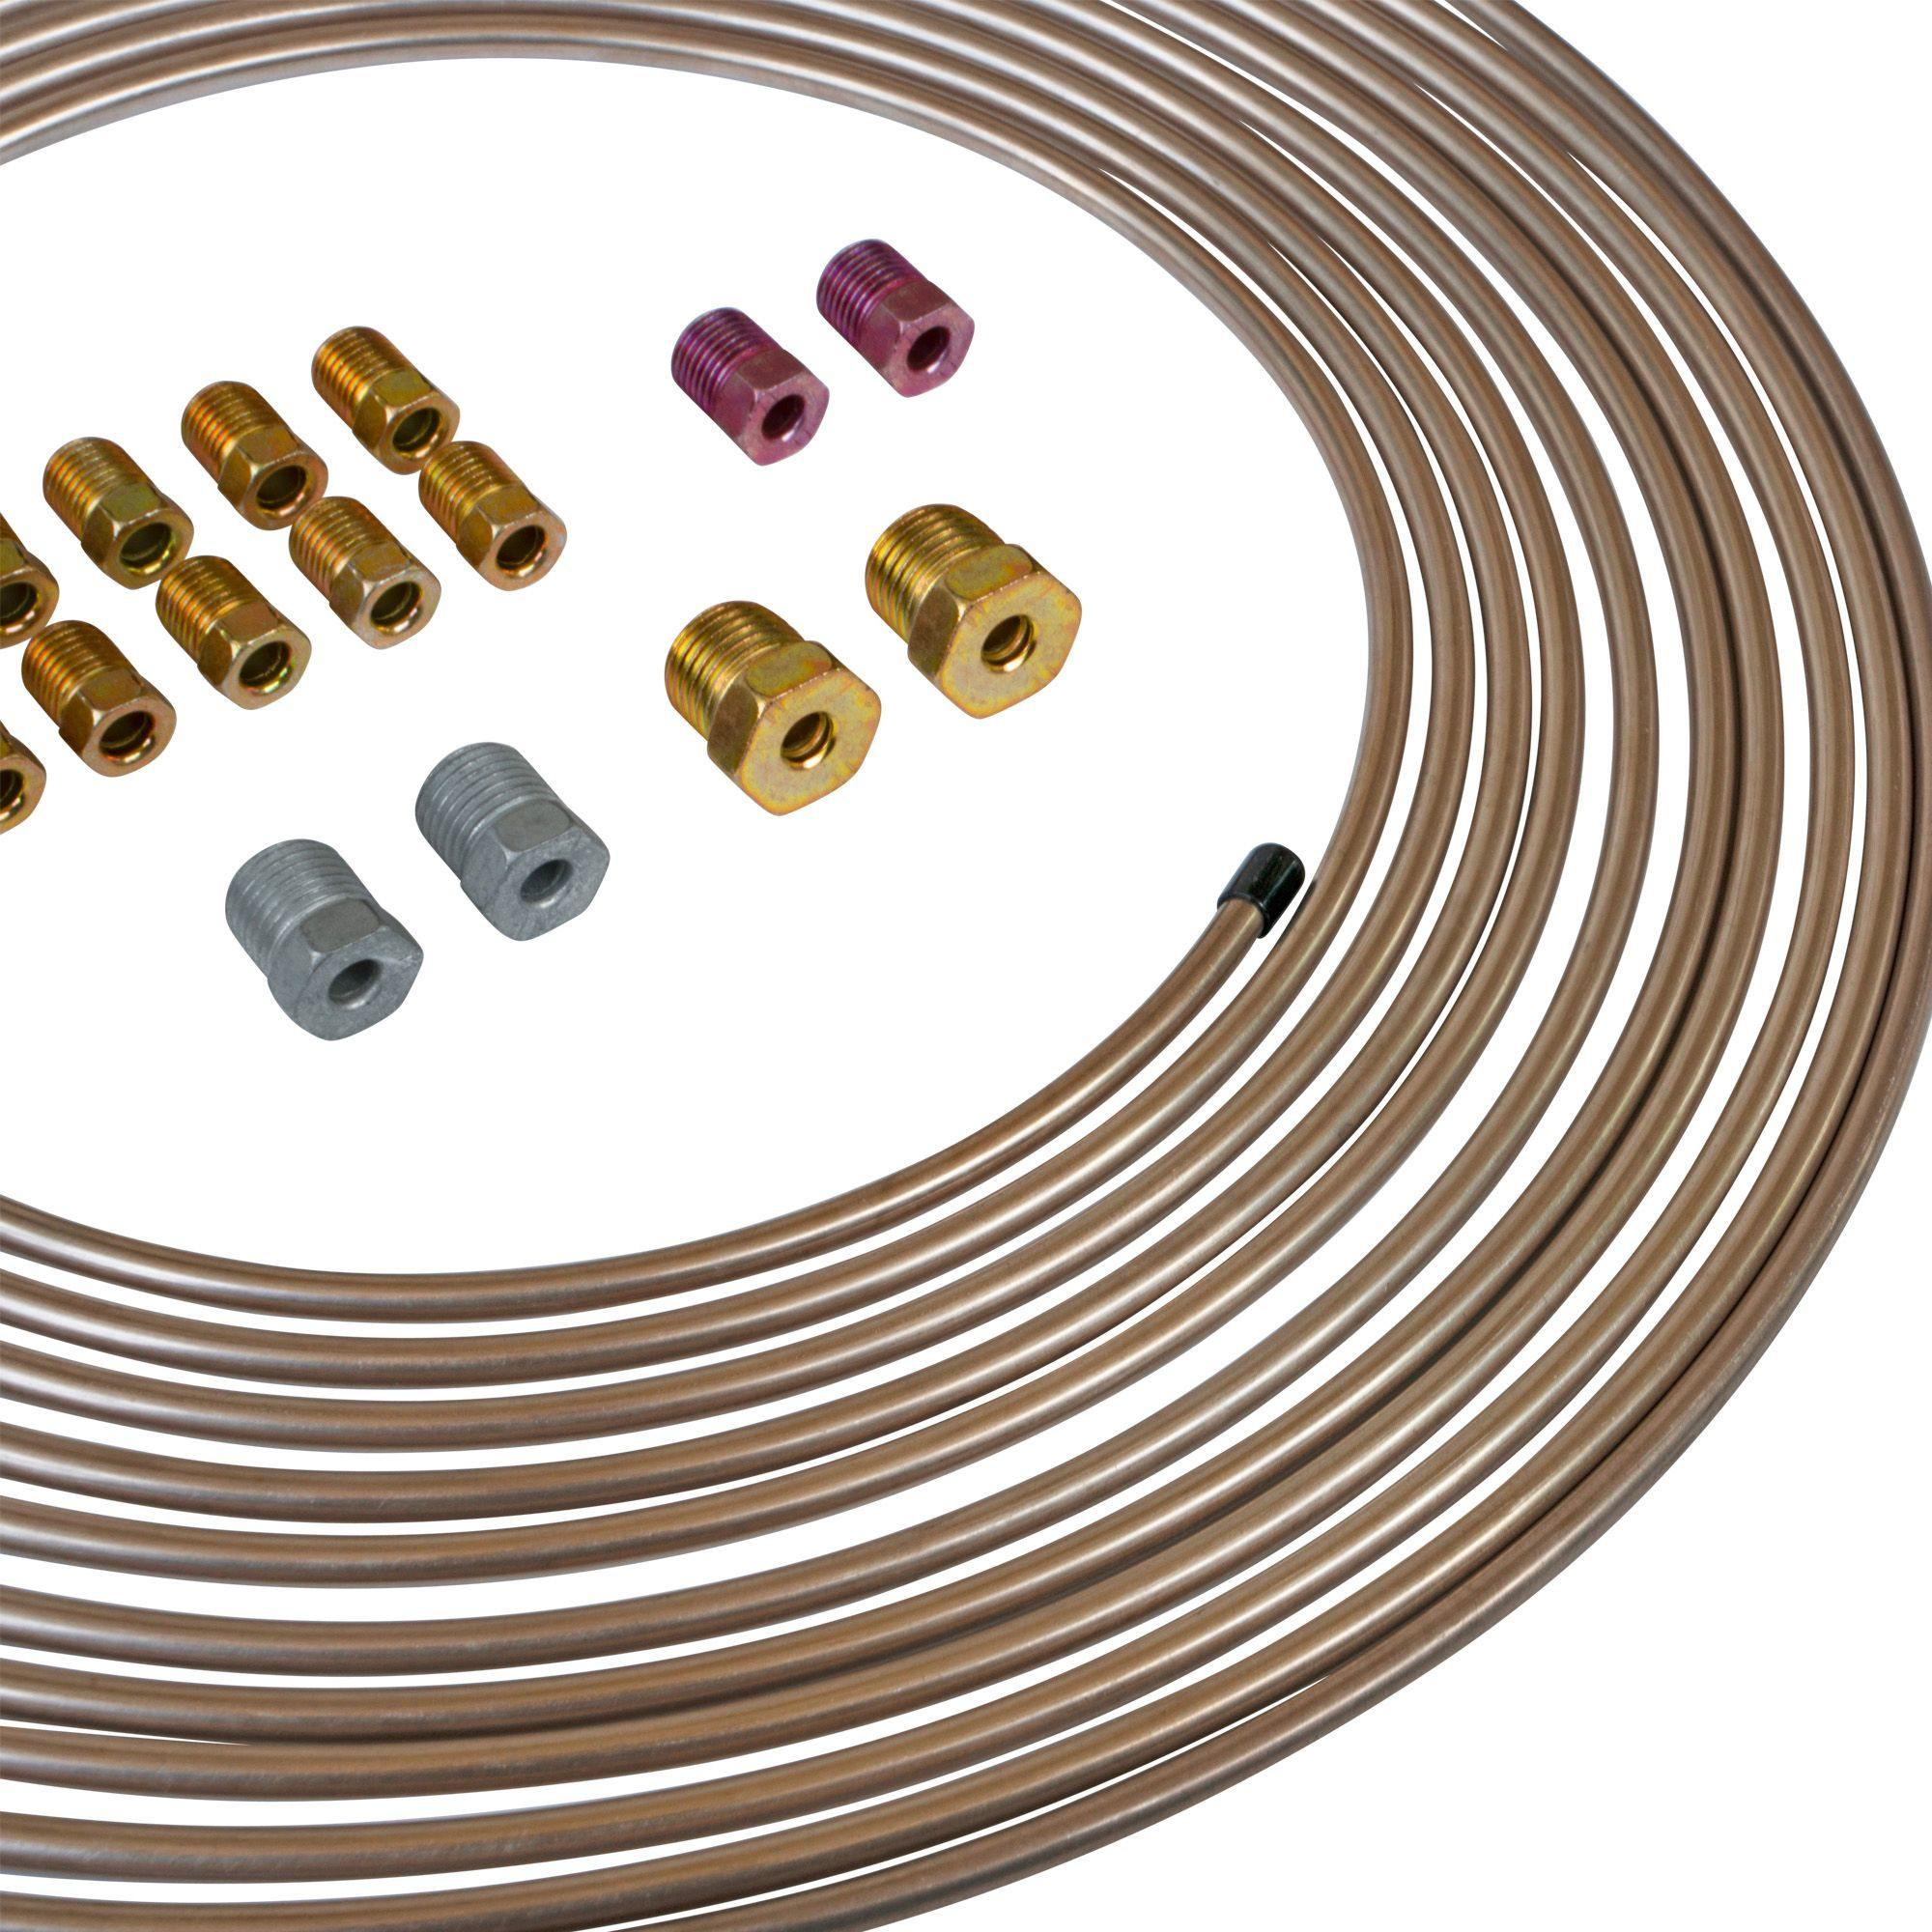 Fuel Line Tube Coil Transmission Line Tube Coil SHINEHOME 25 Ft 3//16 Brake Line Tubing Coil Roll with 16 Fittings Plugs